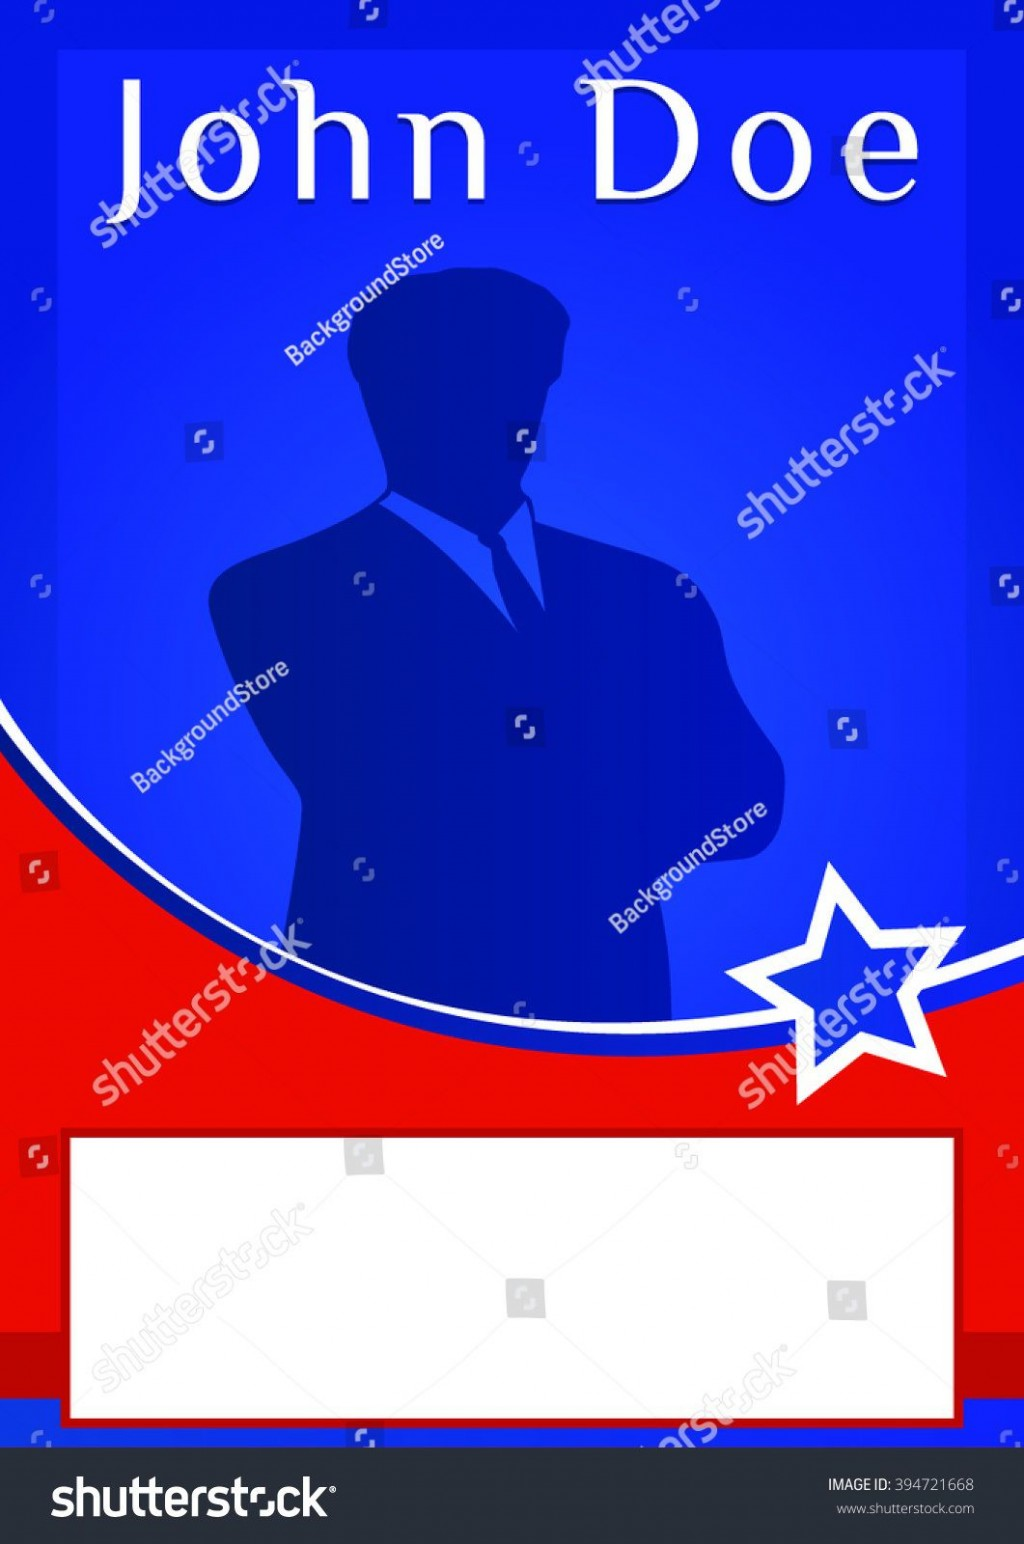 009 Impressive Free Campaign Poster Template Download Photo Large